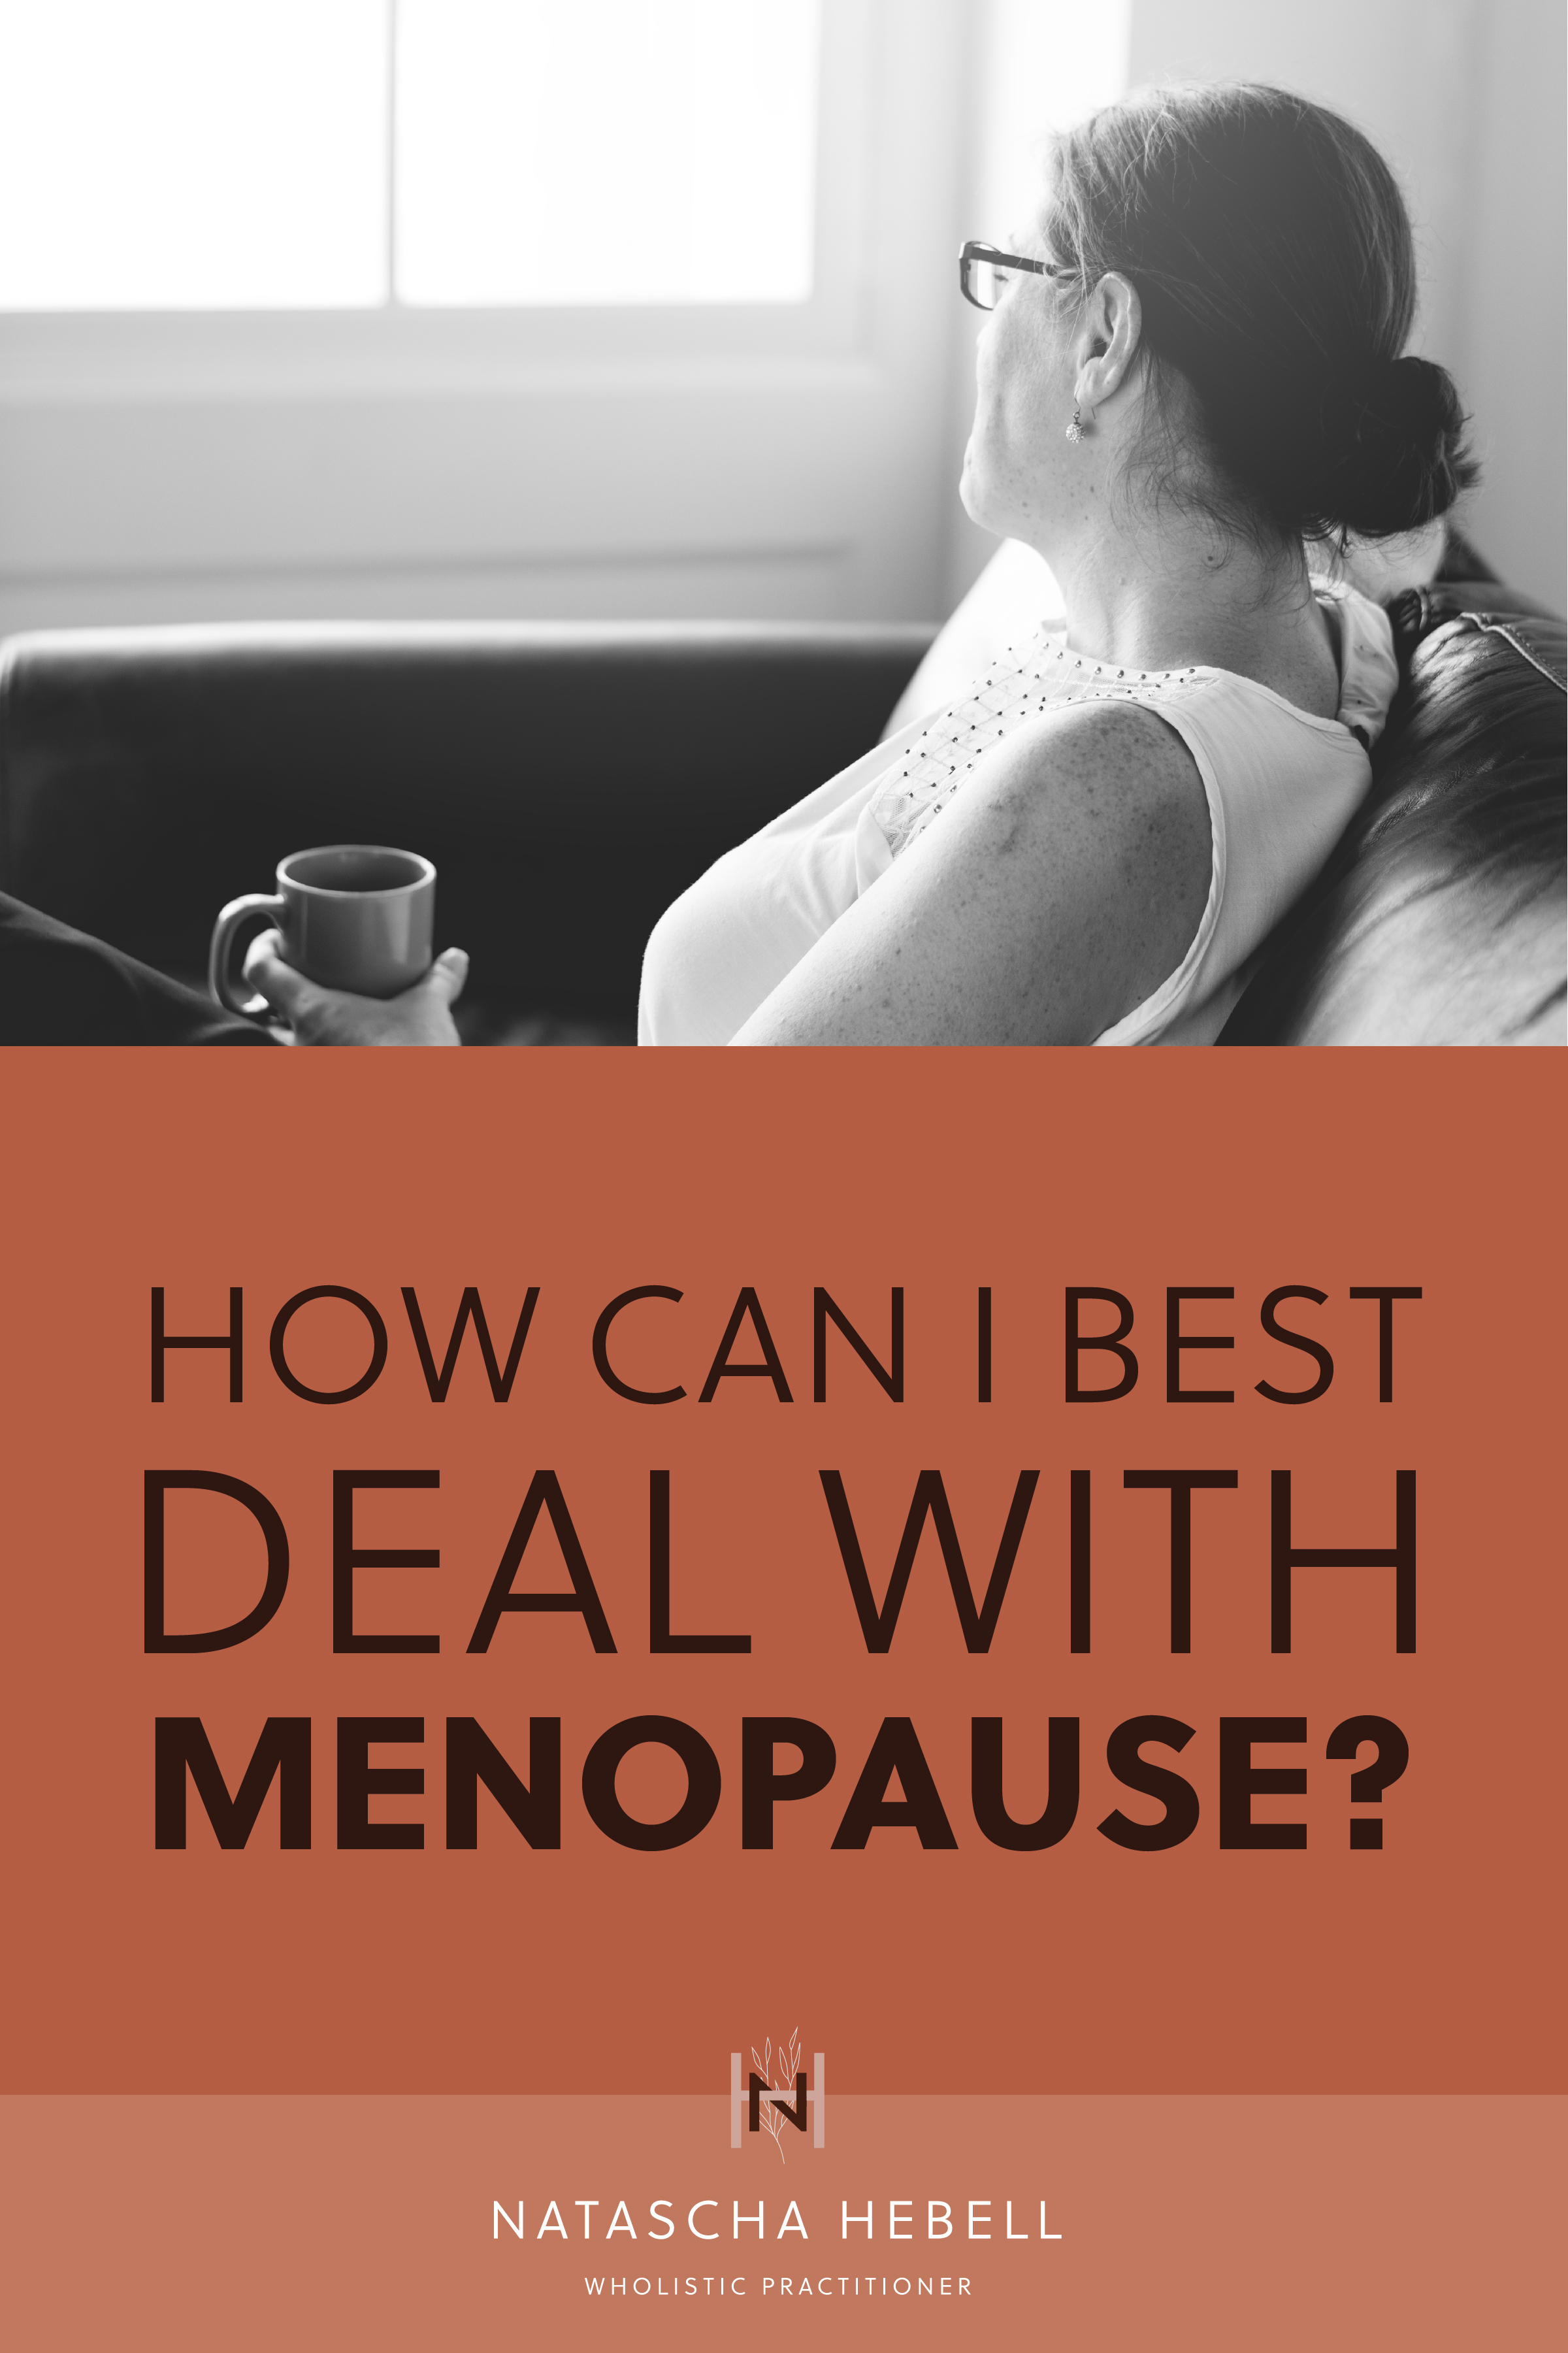 How can I best deal with menopause?  | Natascha Hebell, Wholistic Practitioner